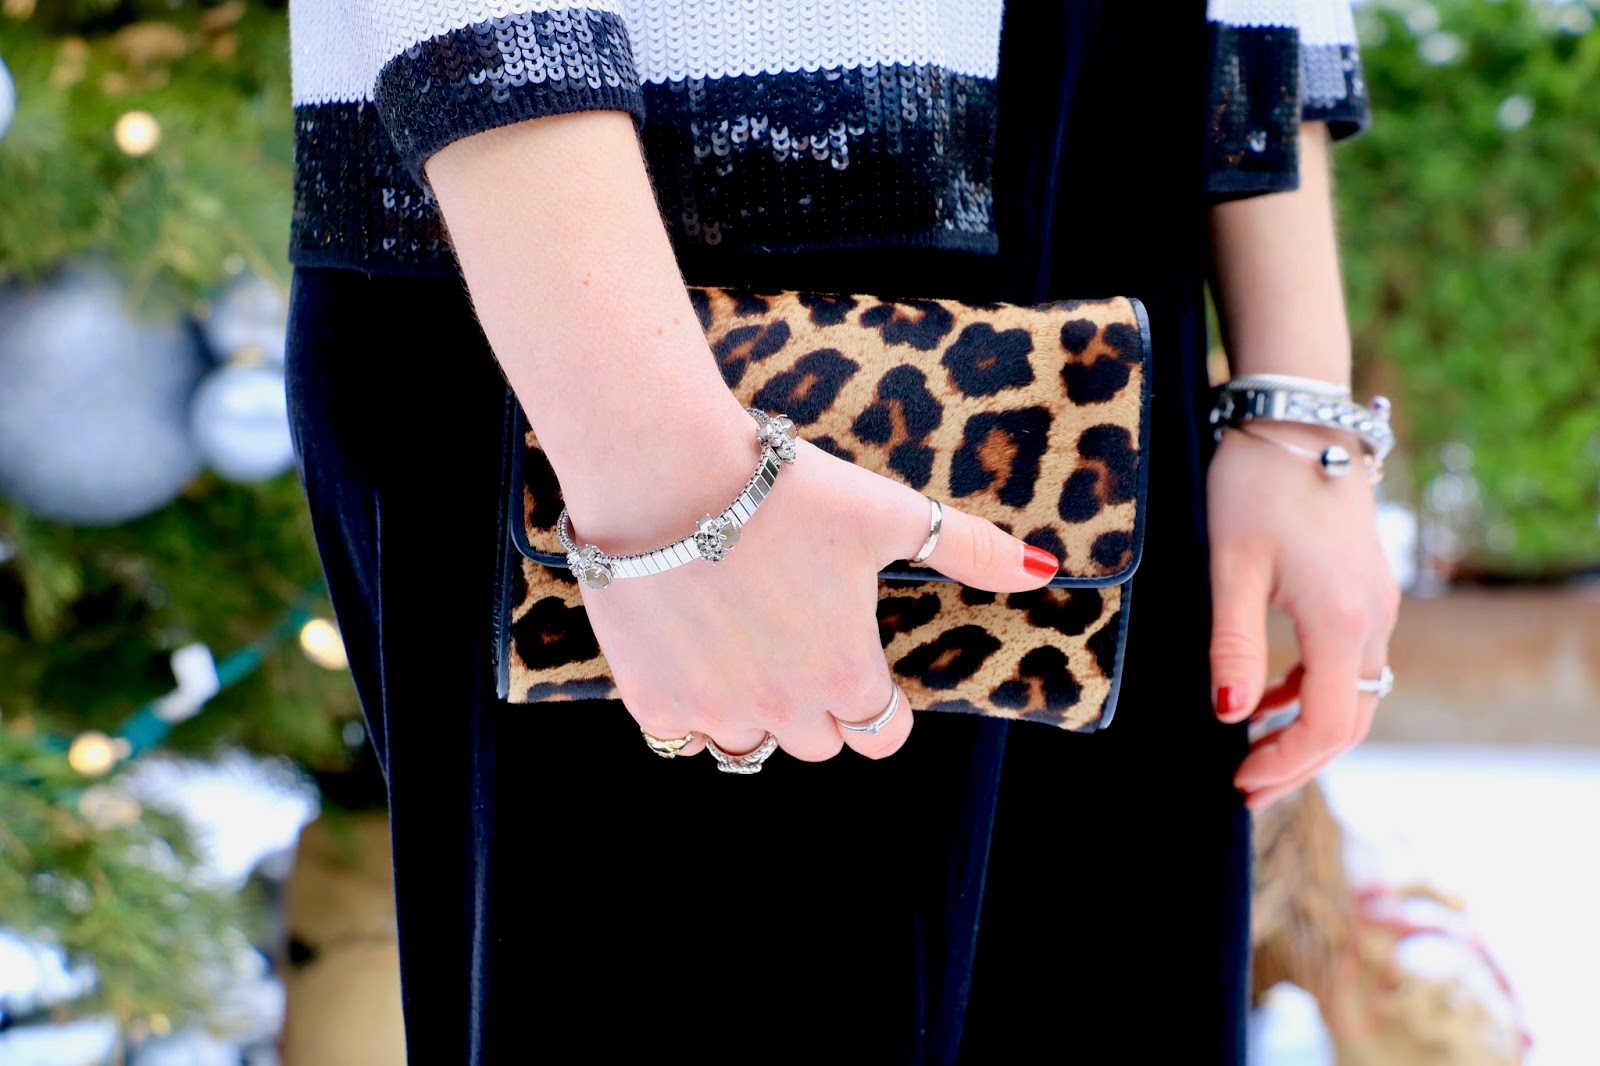 Nyc fashion blogger Kathleen Harper holding a leopard Michael Kors clutch